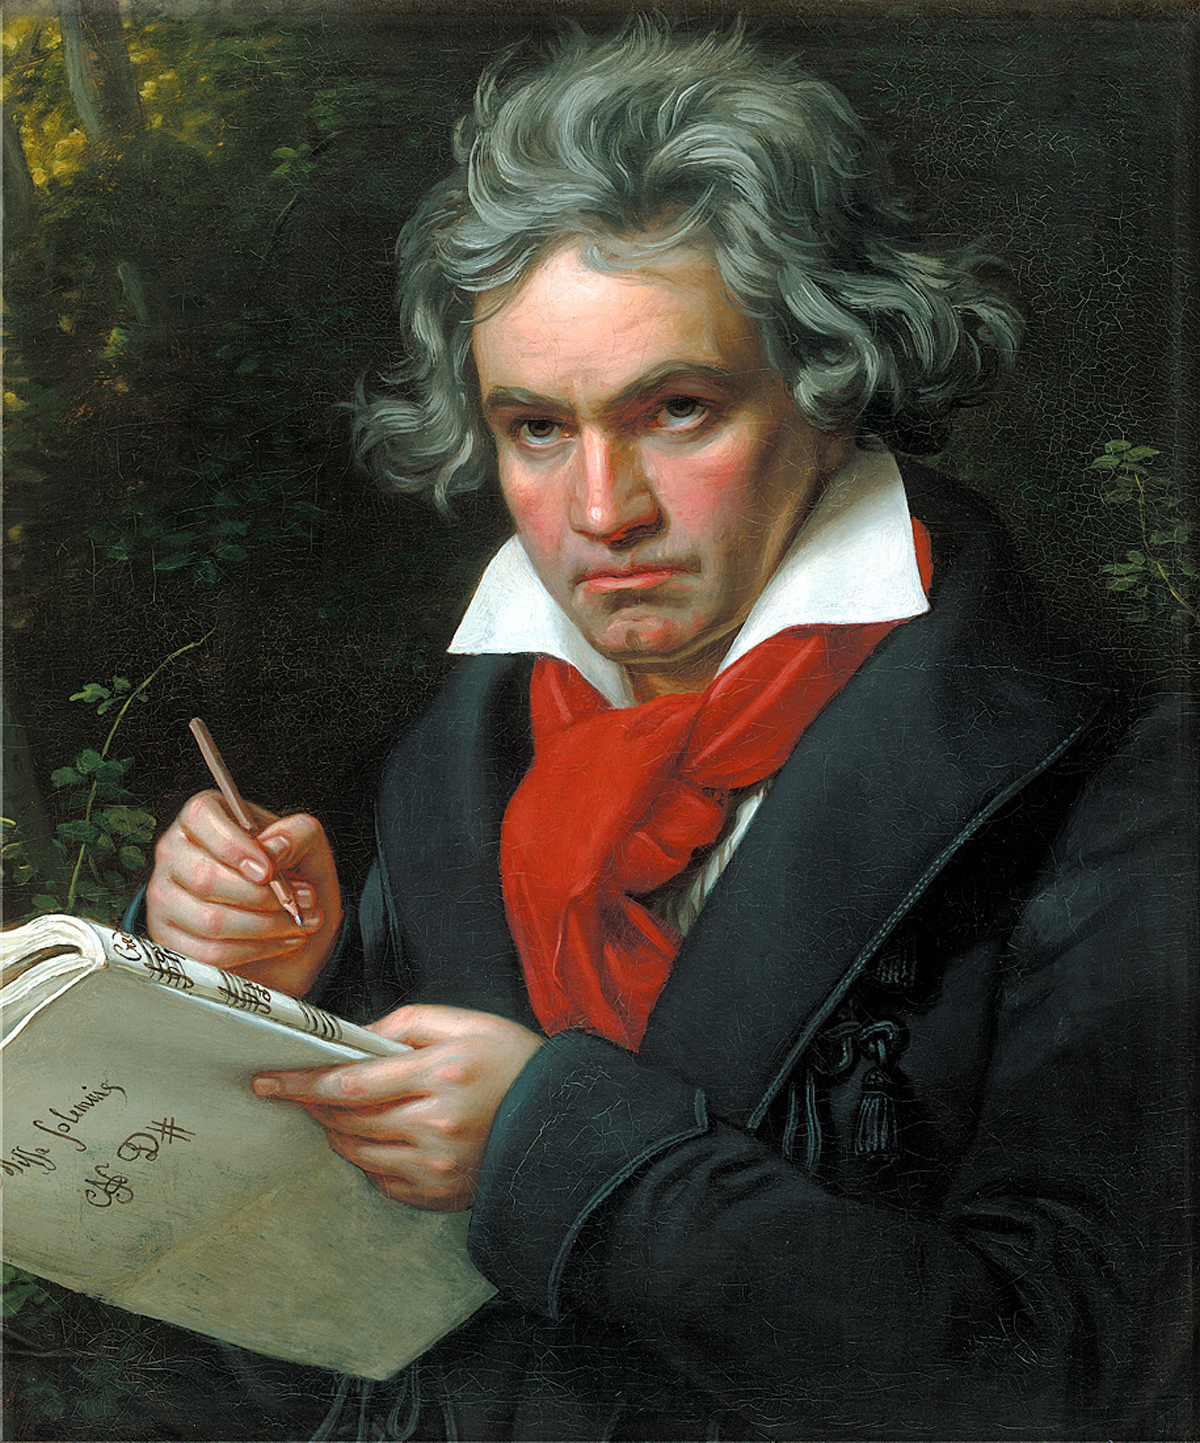 Portrait painting of Beethoven writing out a score of music